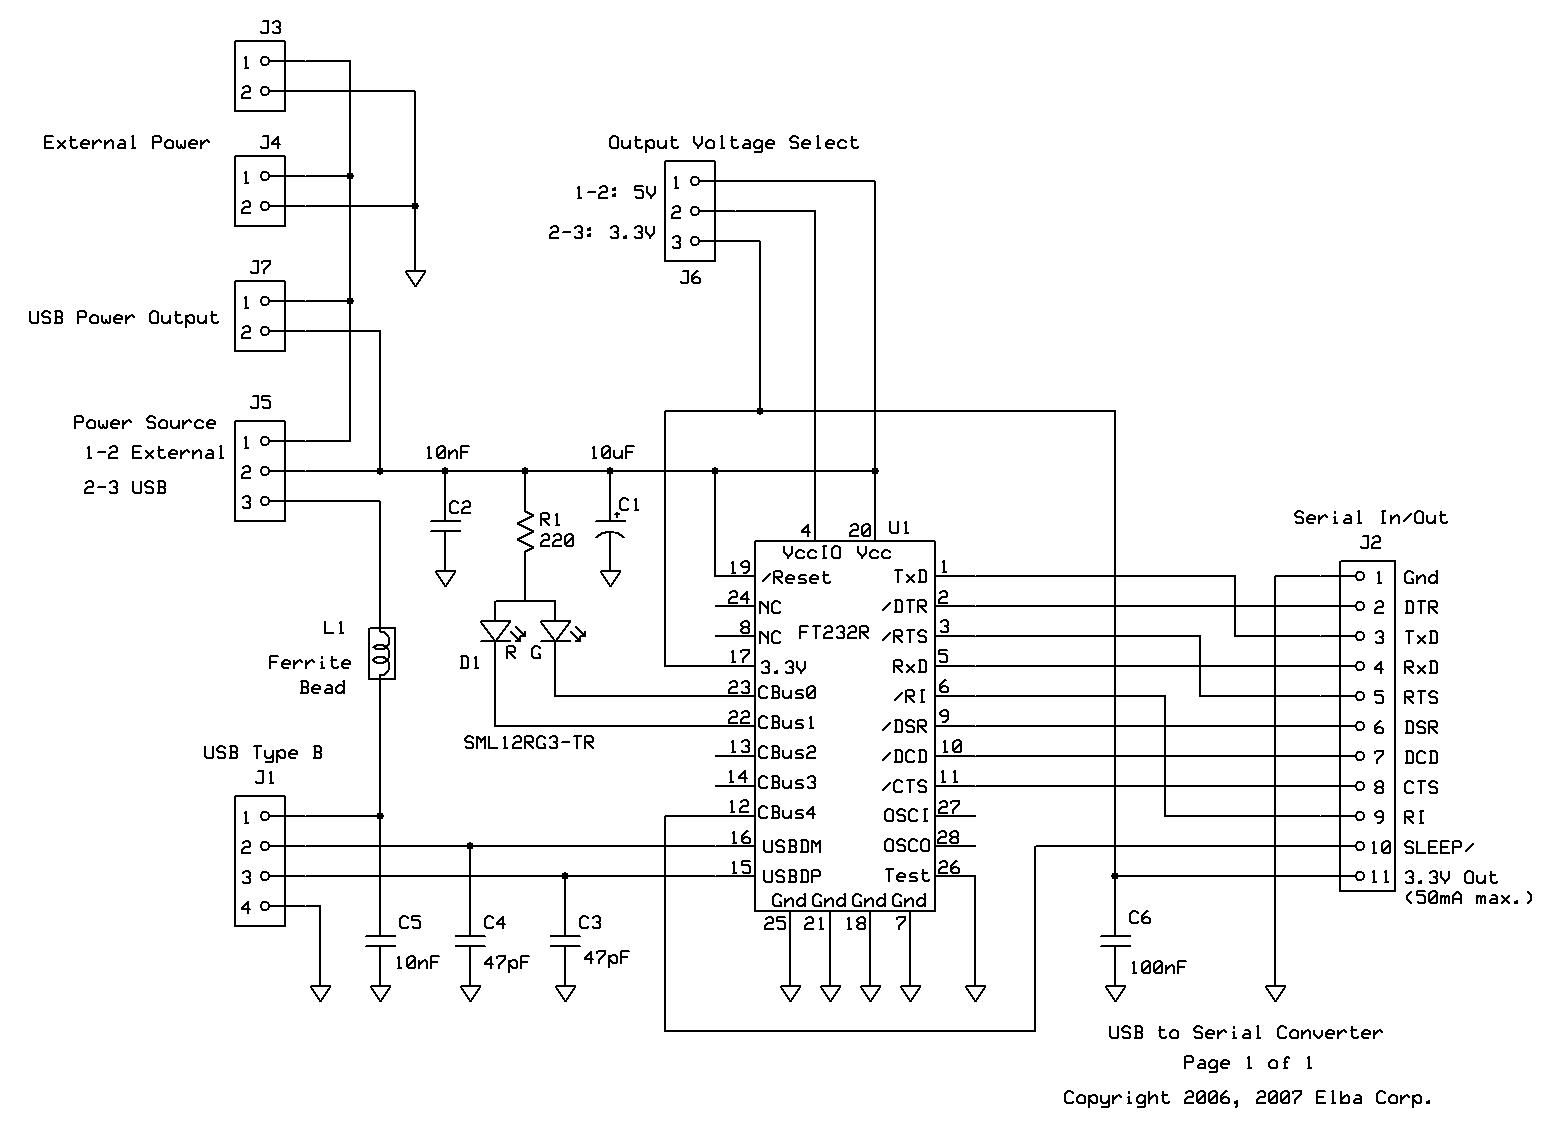 schematic usb ttl interface module reference manual usb type b wiring diagram at readyjetset.co